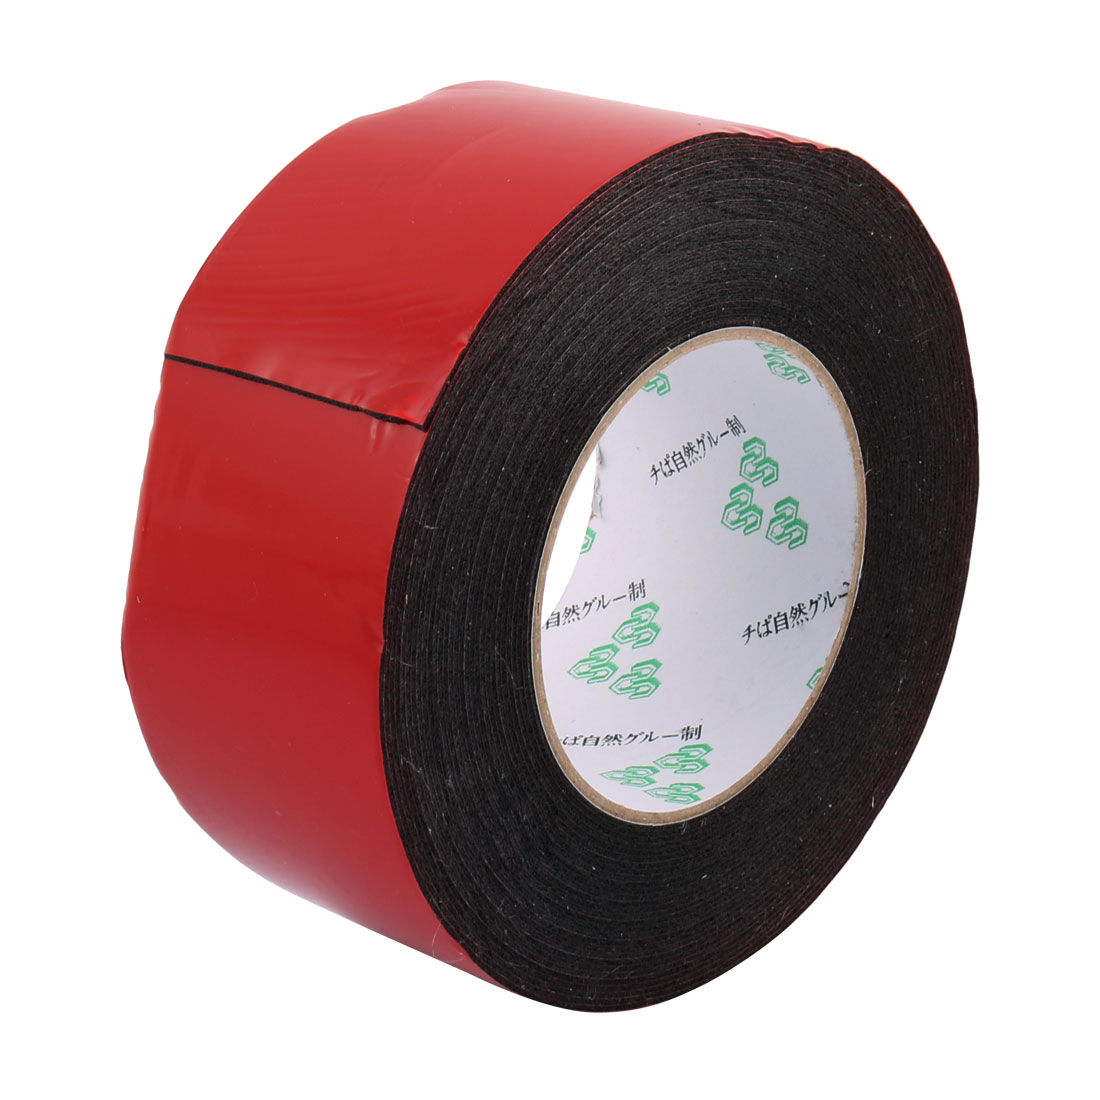 60mm x 1mm Double Sided Sponge Tape Adhesive Sticker Shockproof SpongeTape 10M